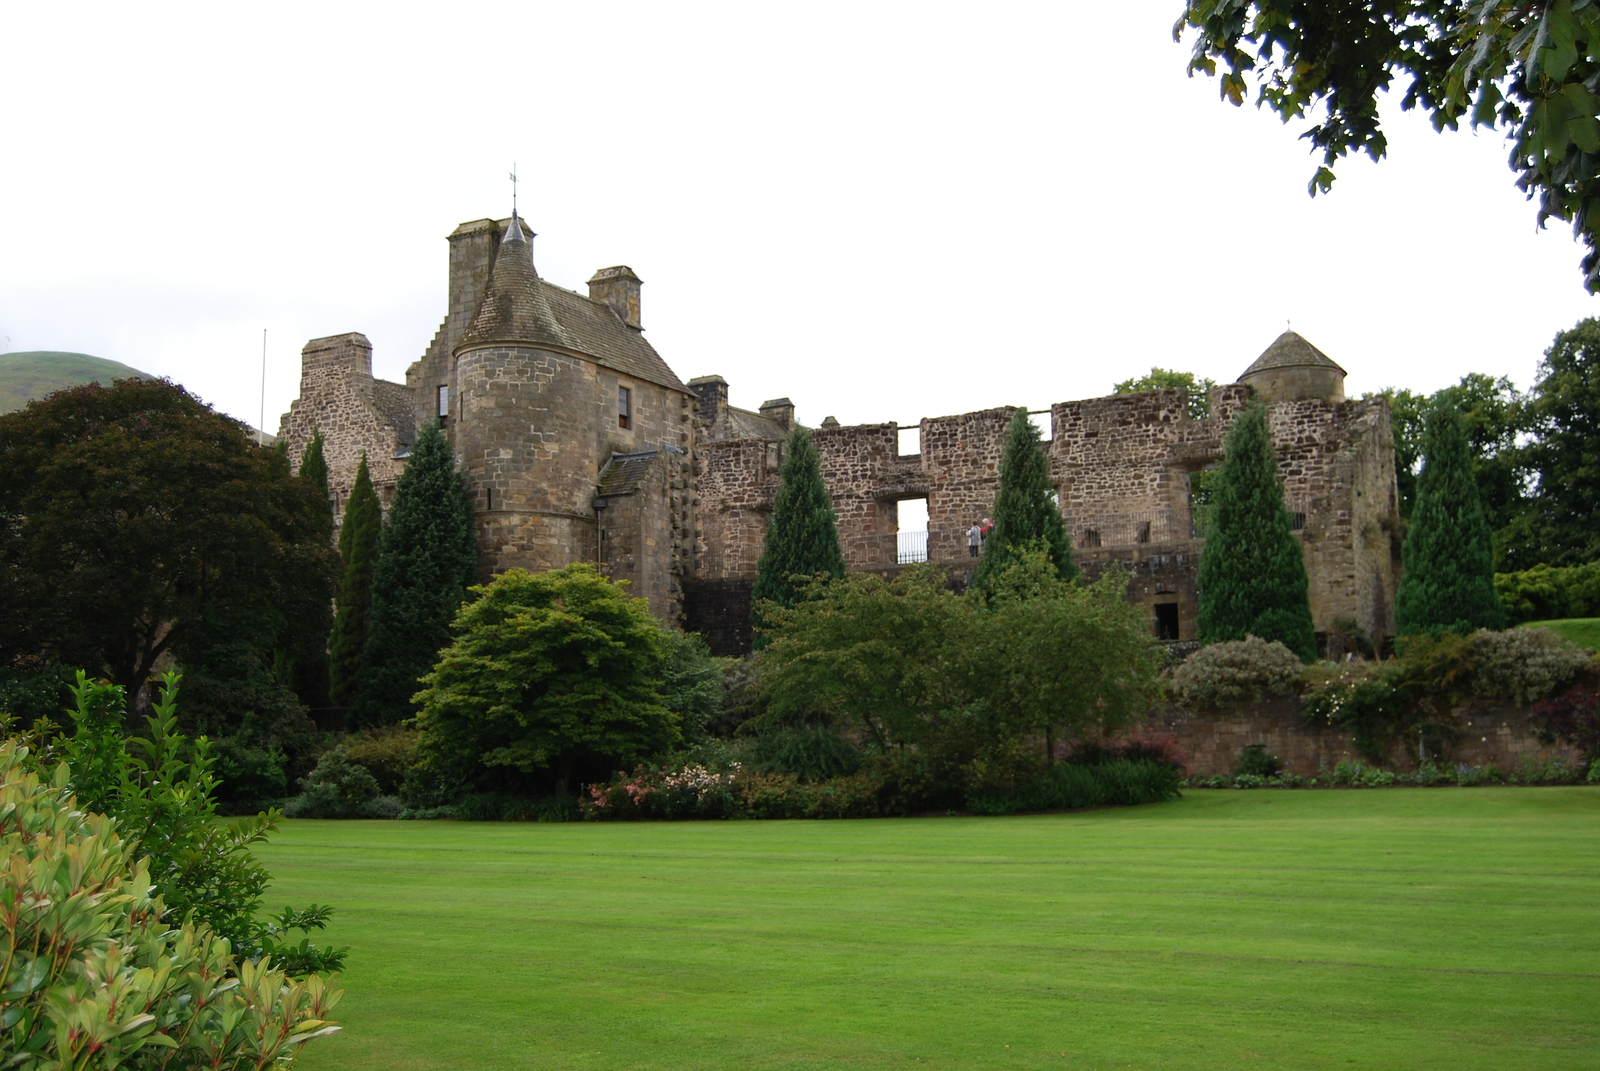 Visit the iconic Falkland Palace on your tour of Scotland